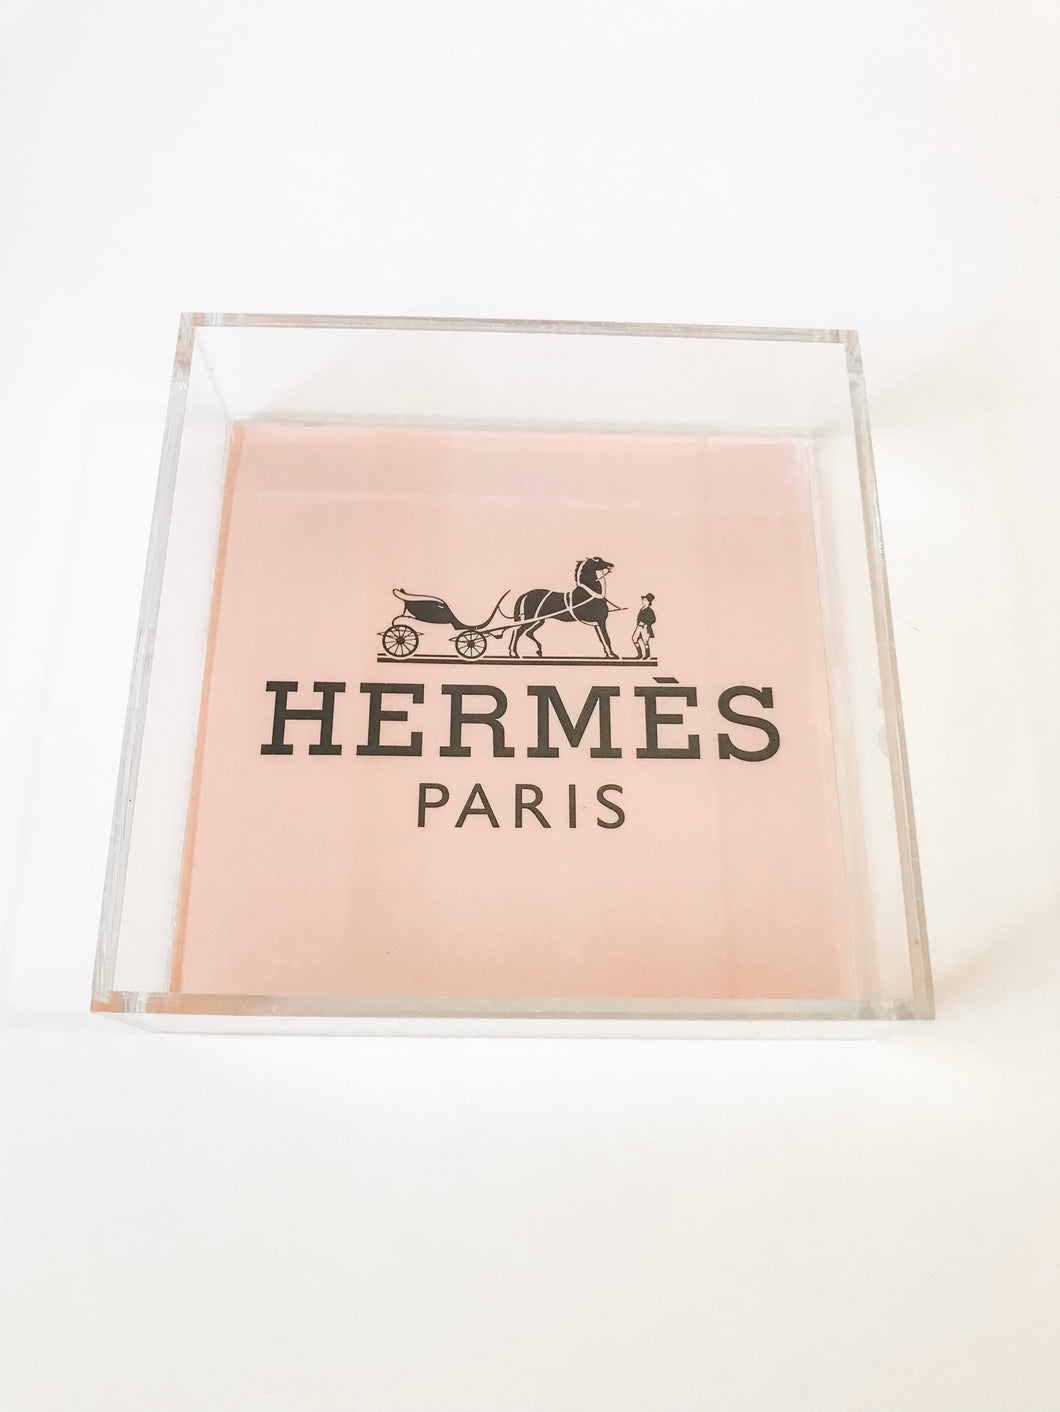 HERMES (8X8) TRAY - BLUSH - BACK ORDERED